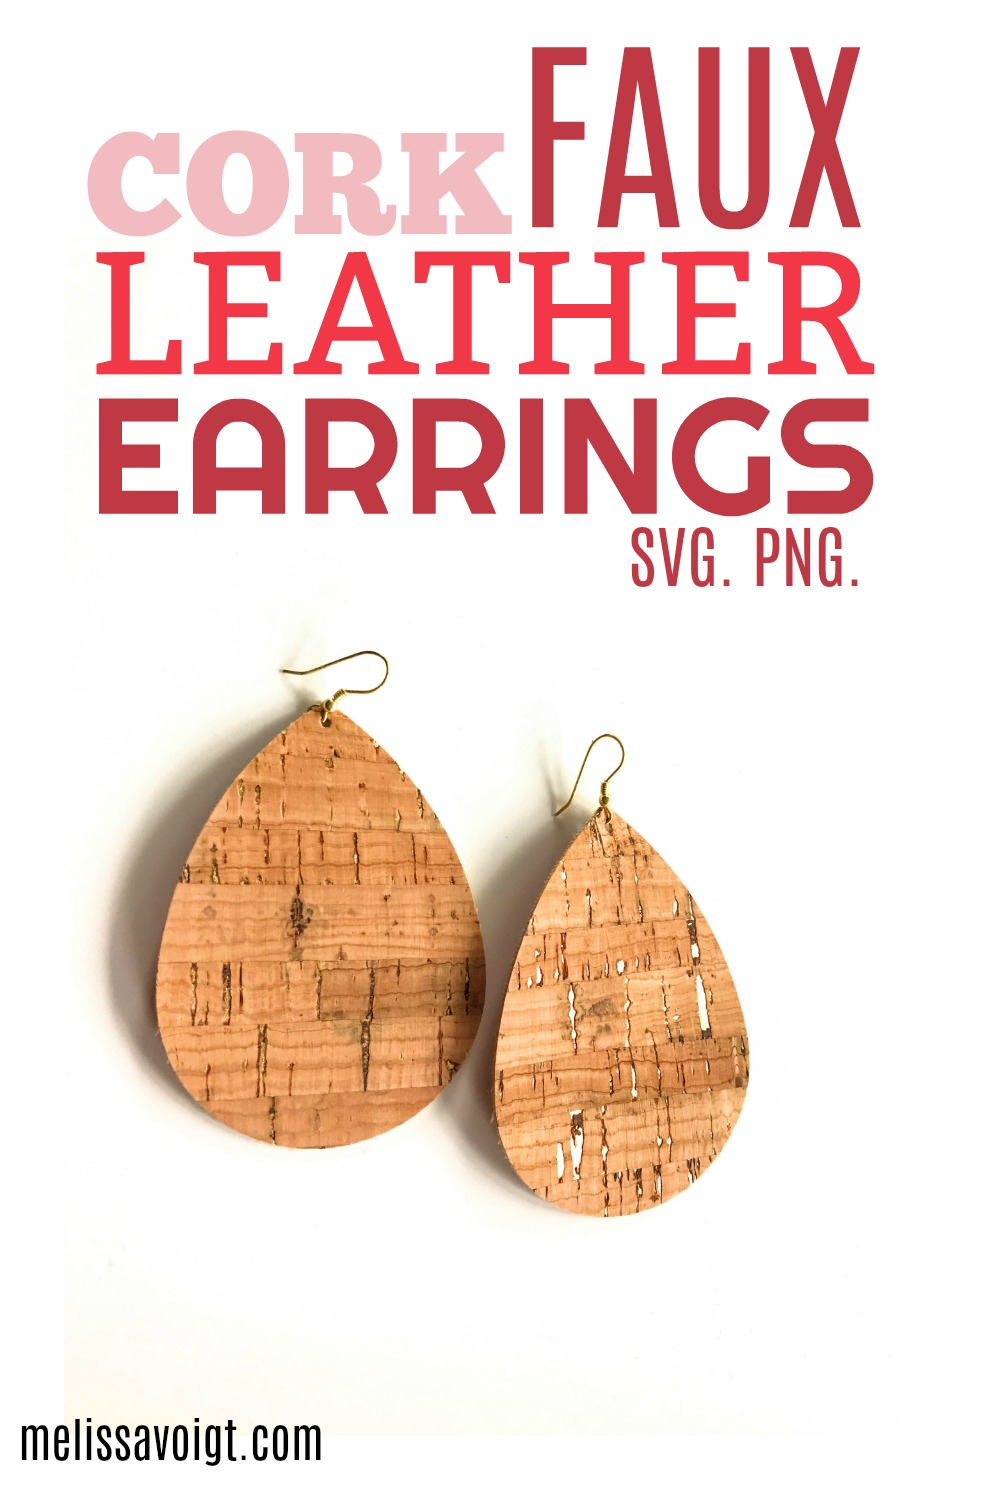 cork svg teardrop earrings leather.jpg